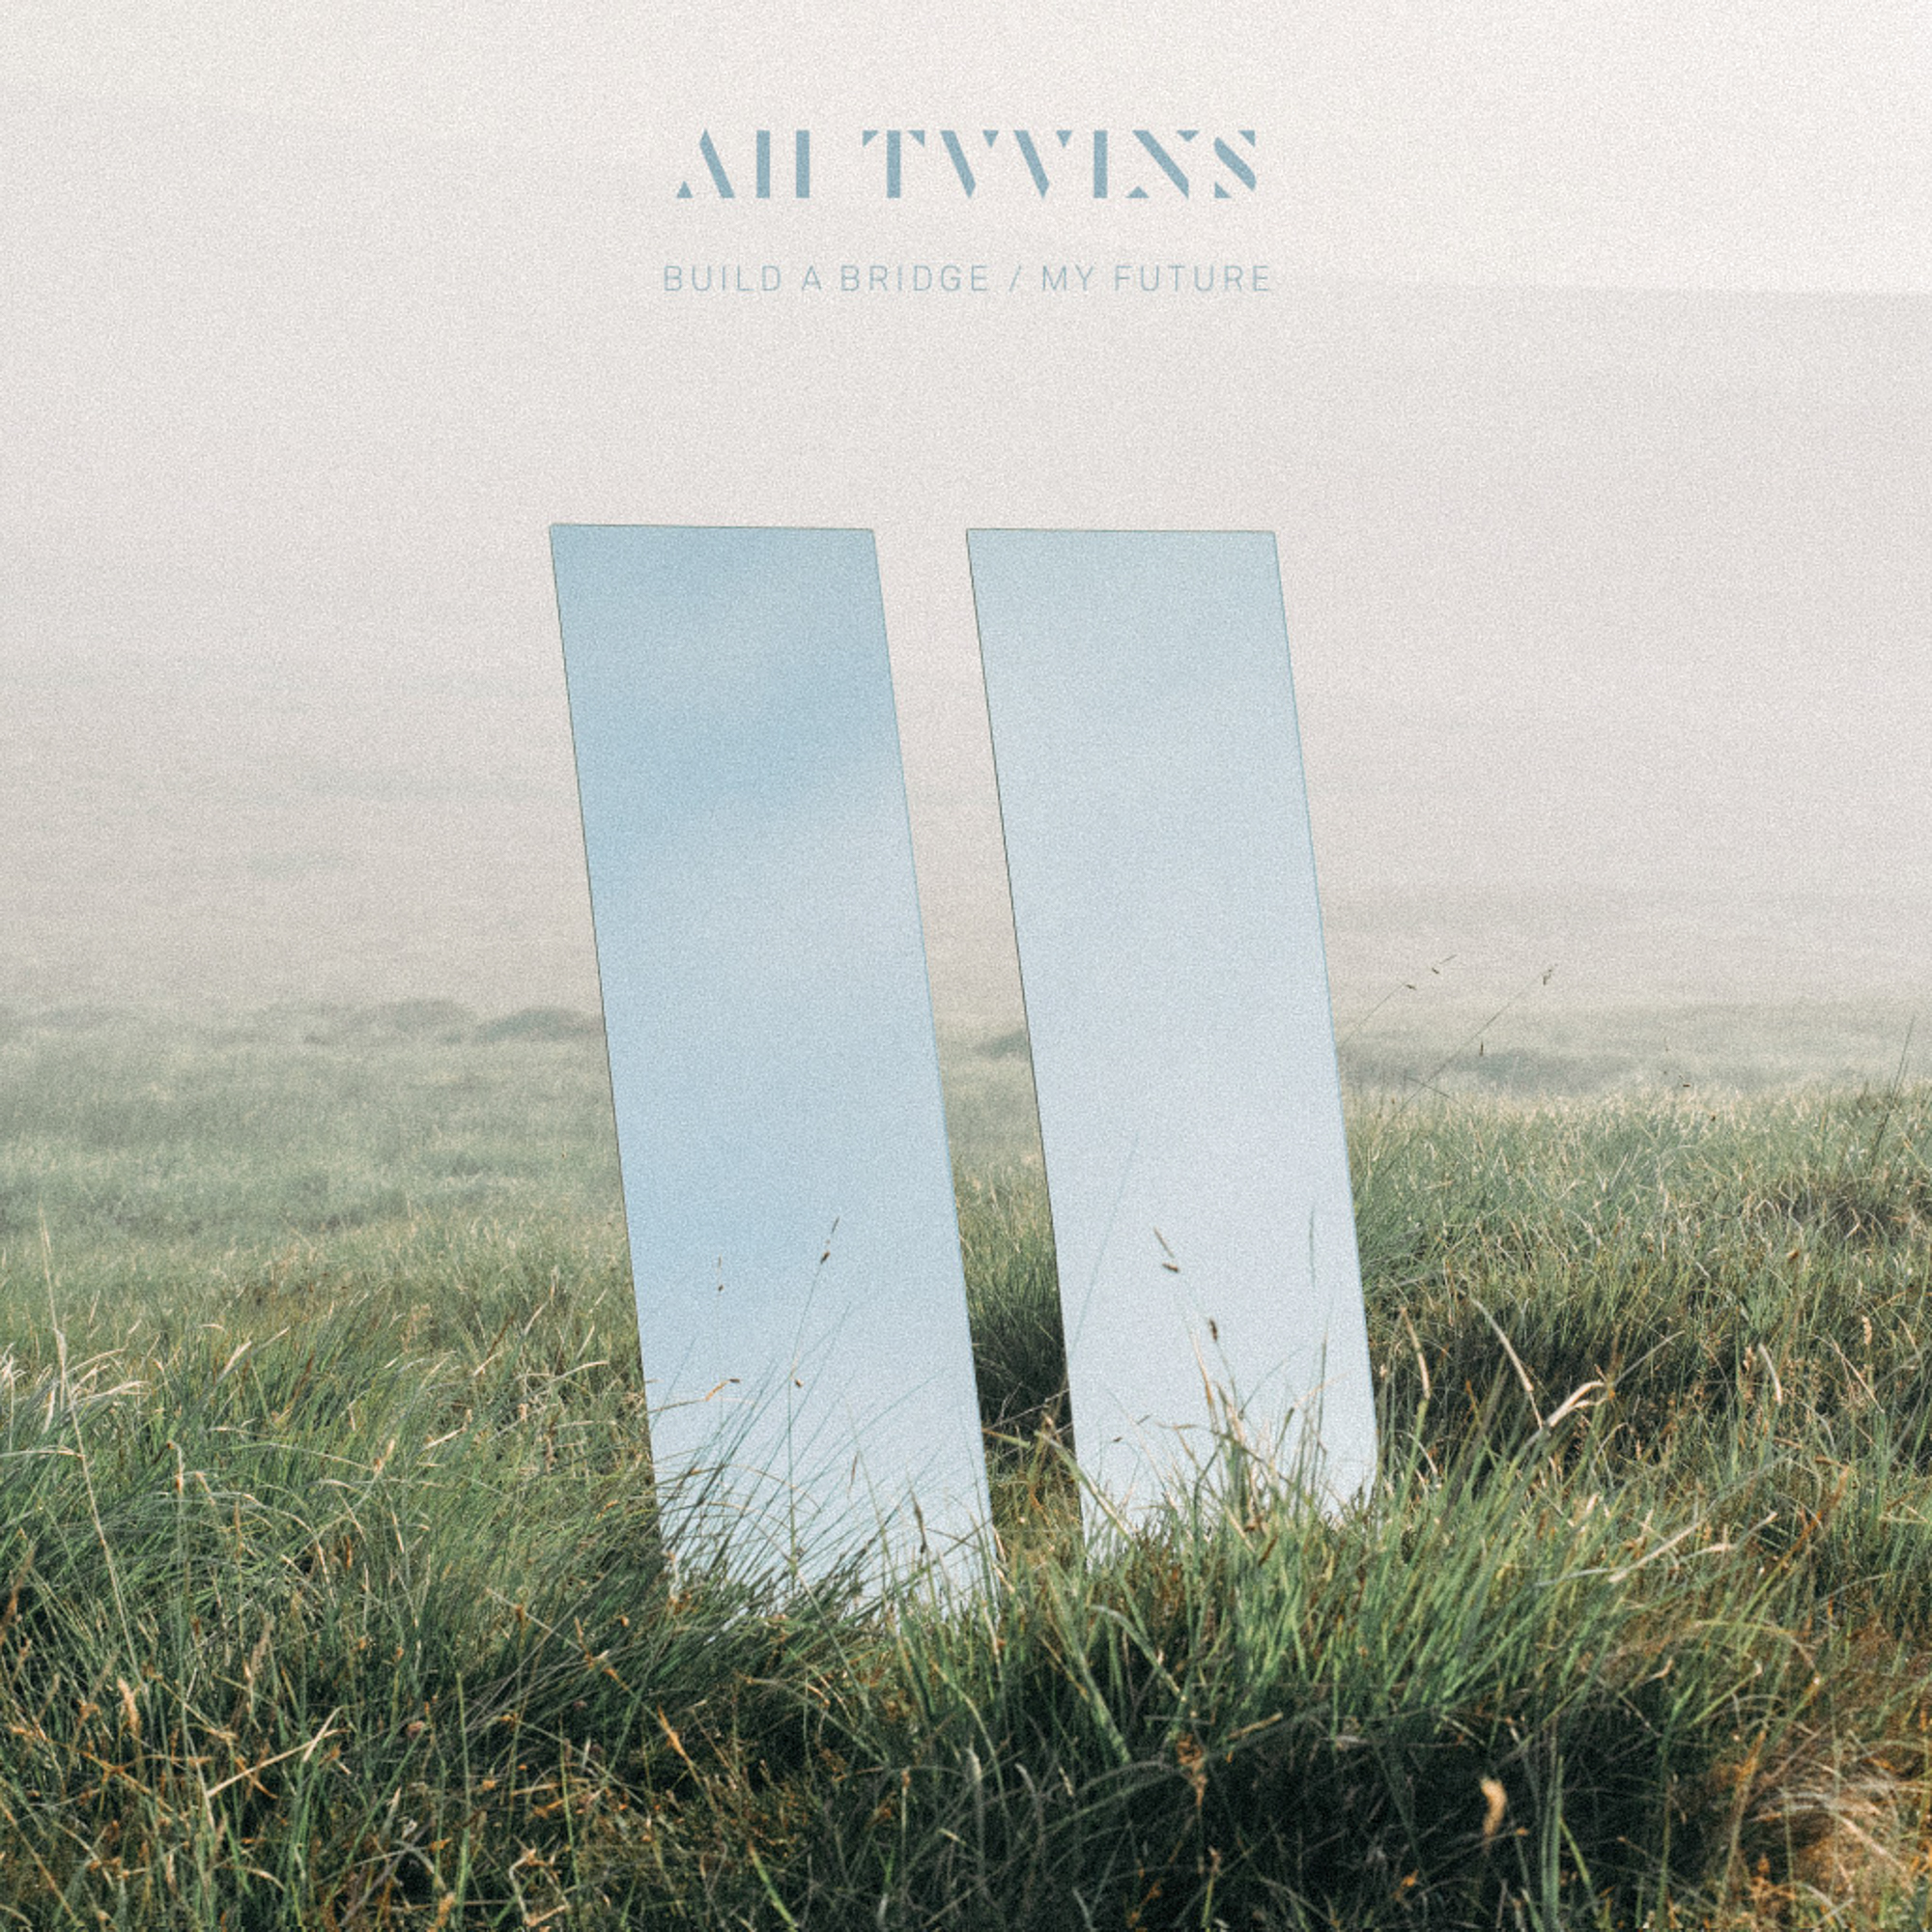 Myles-Shelly-All-Tvvins-Faction-Records-4-1024x1024